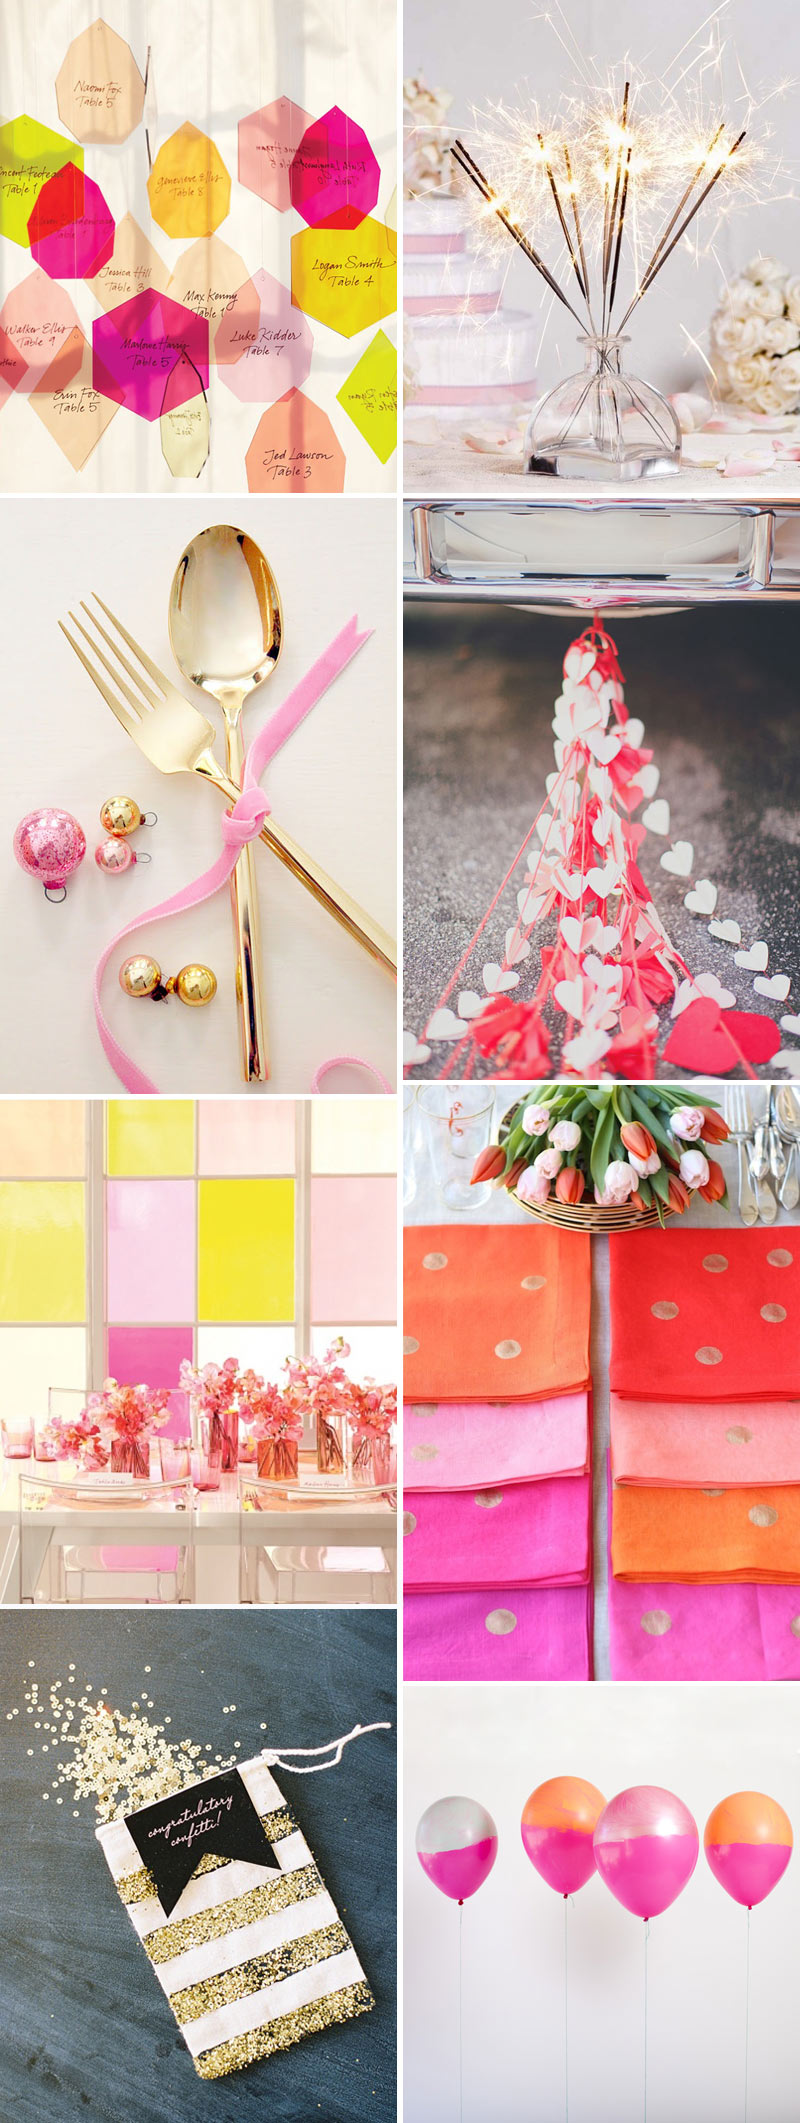 Bright And Beautiful Wedding Decor Inspiration